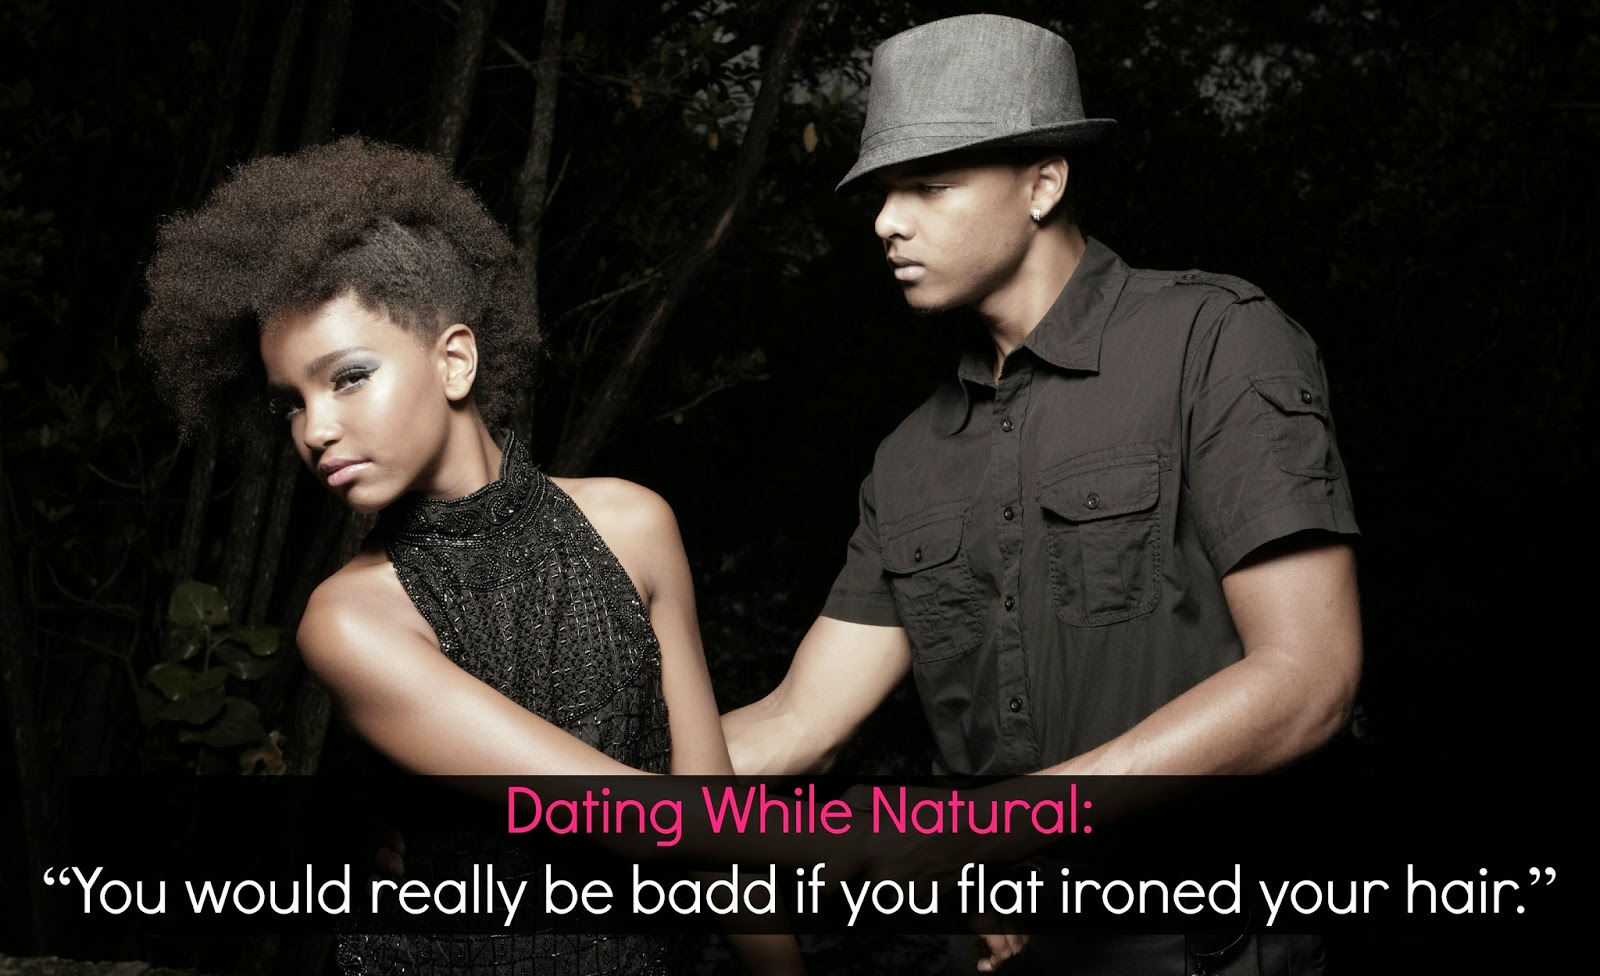 """Dating While Natural: """"You would really be badd if you flat ironed your hair."""""""